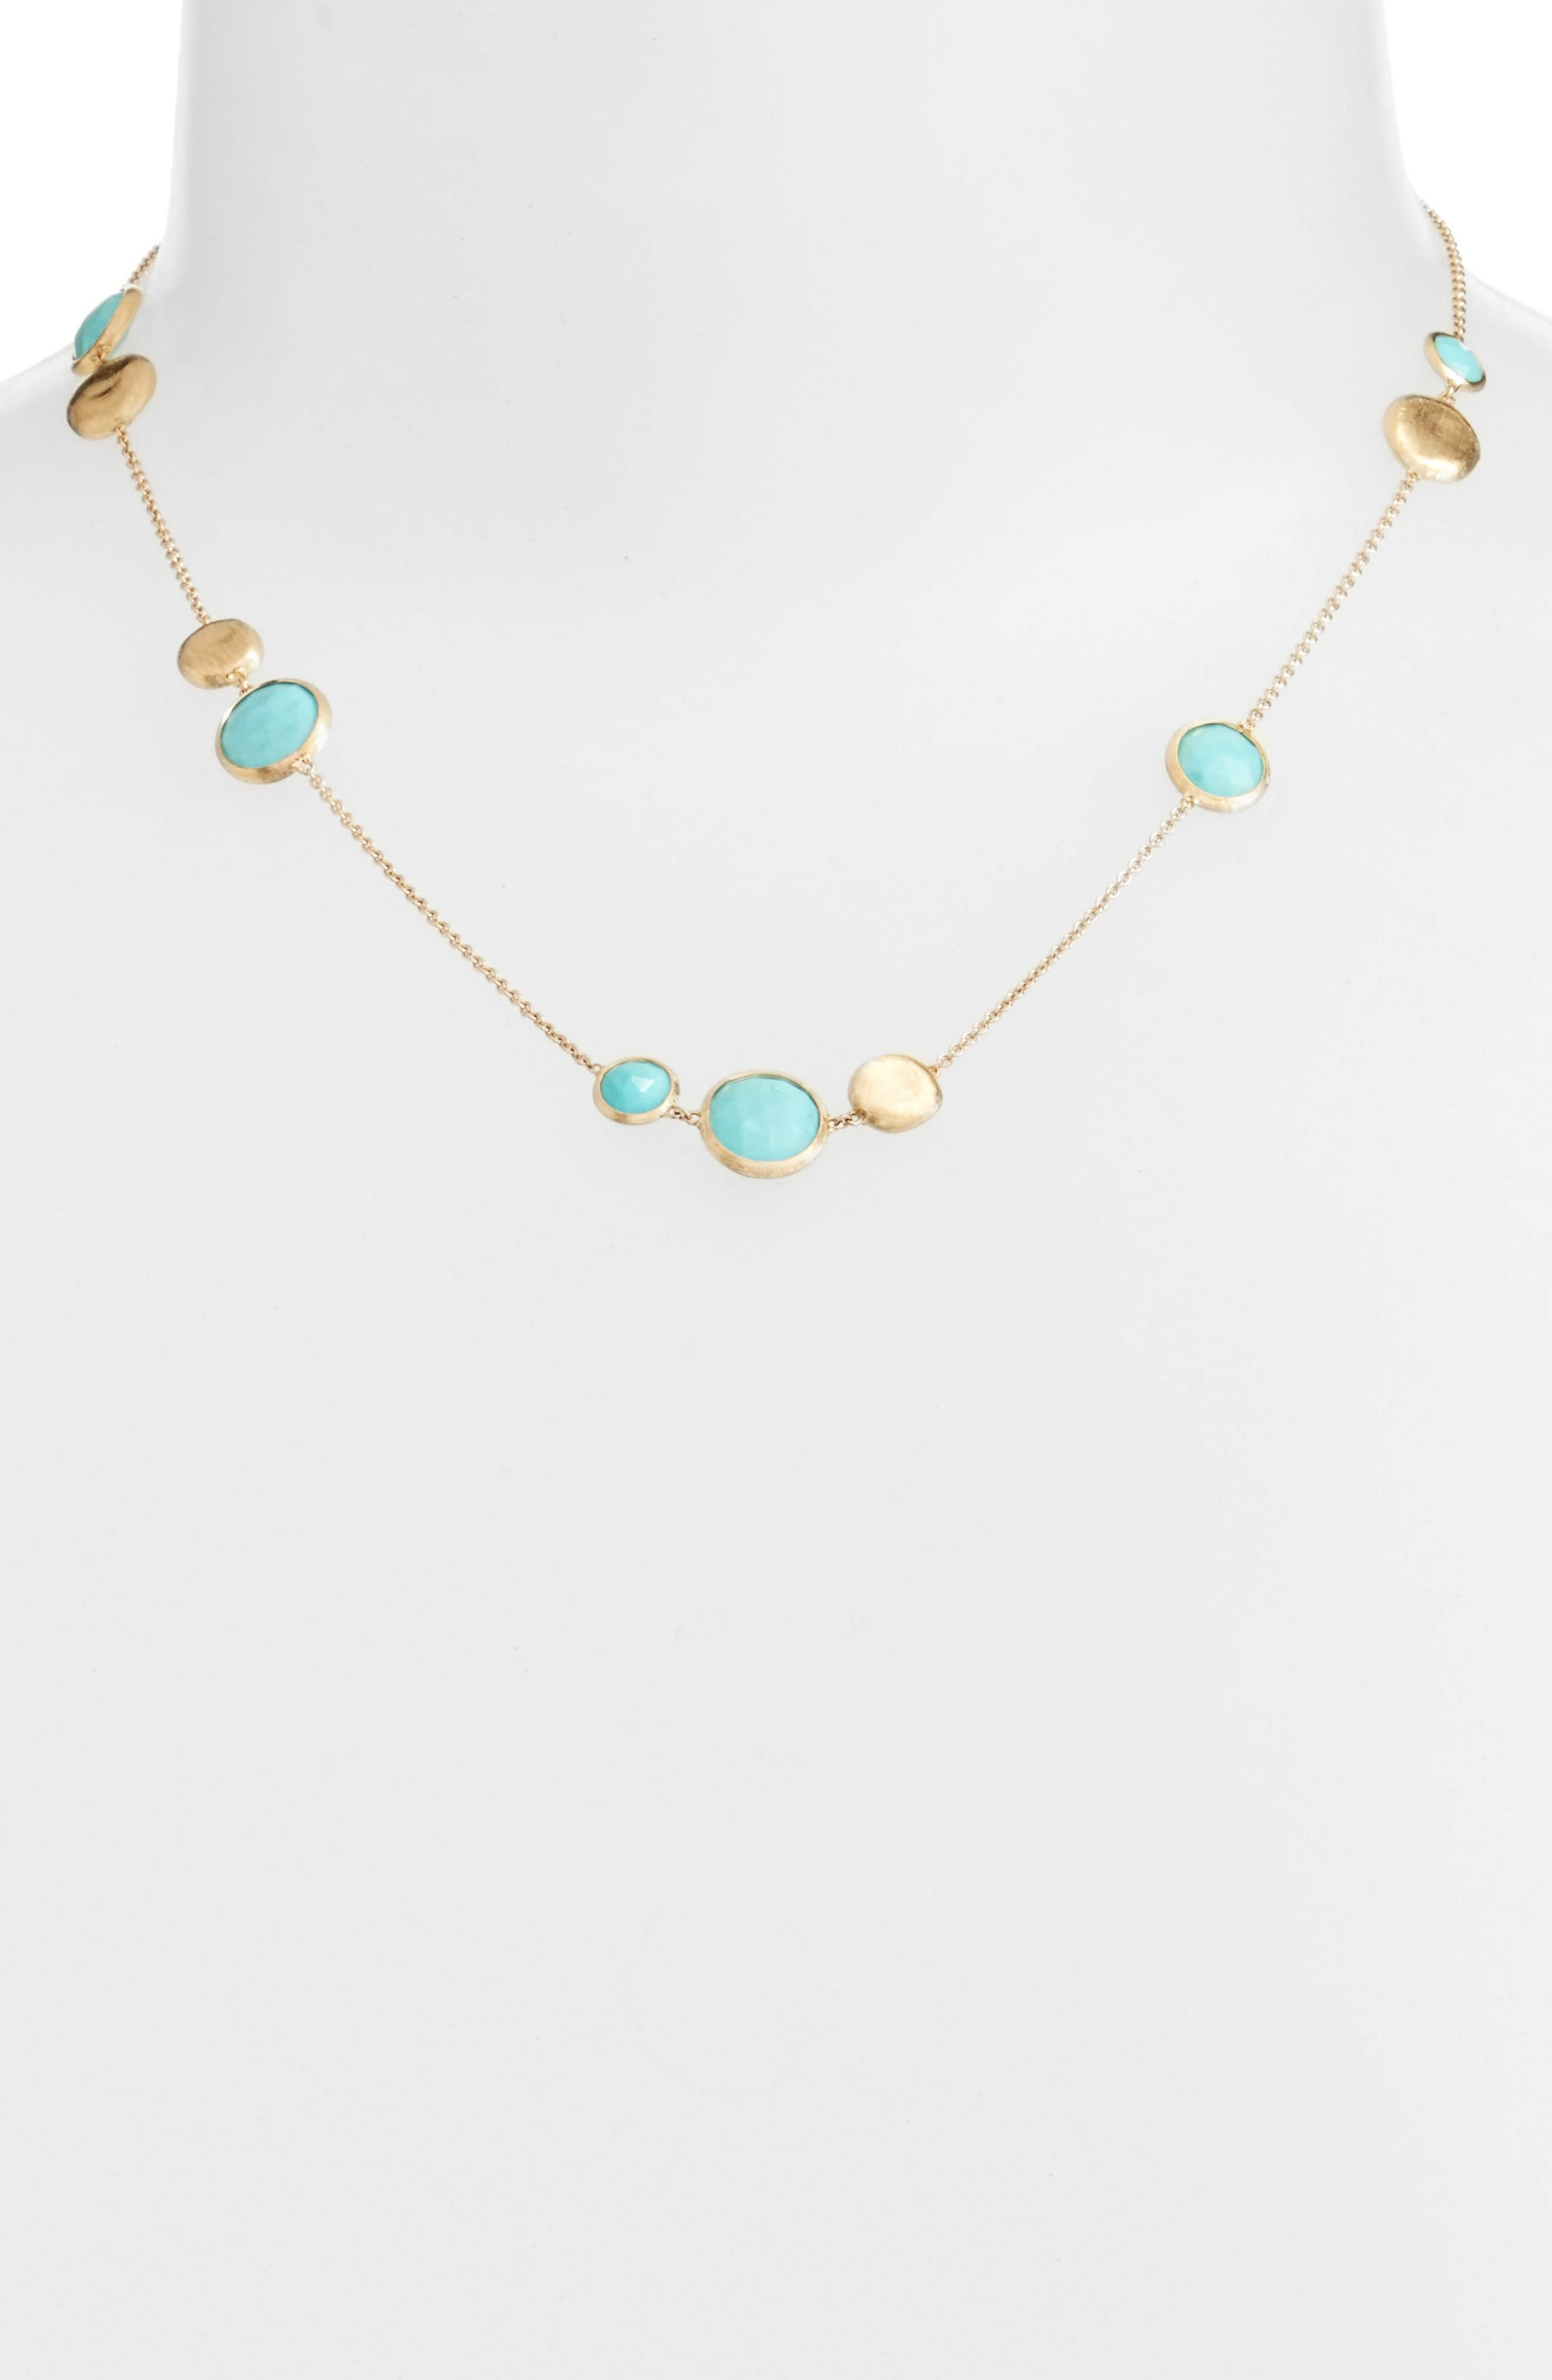 Jaipur Stone Collar Necklace,                             Alternate thumbnail 2, color,                             YELLOW GOLD/ TURQUOISE